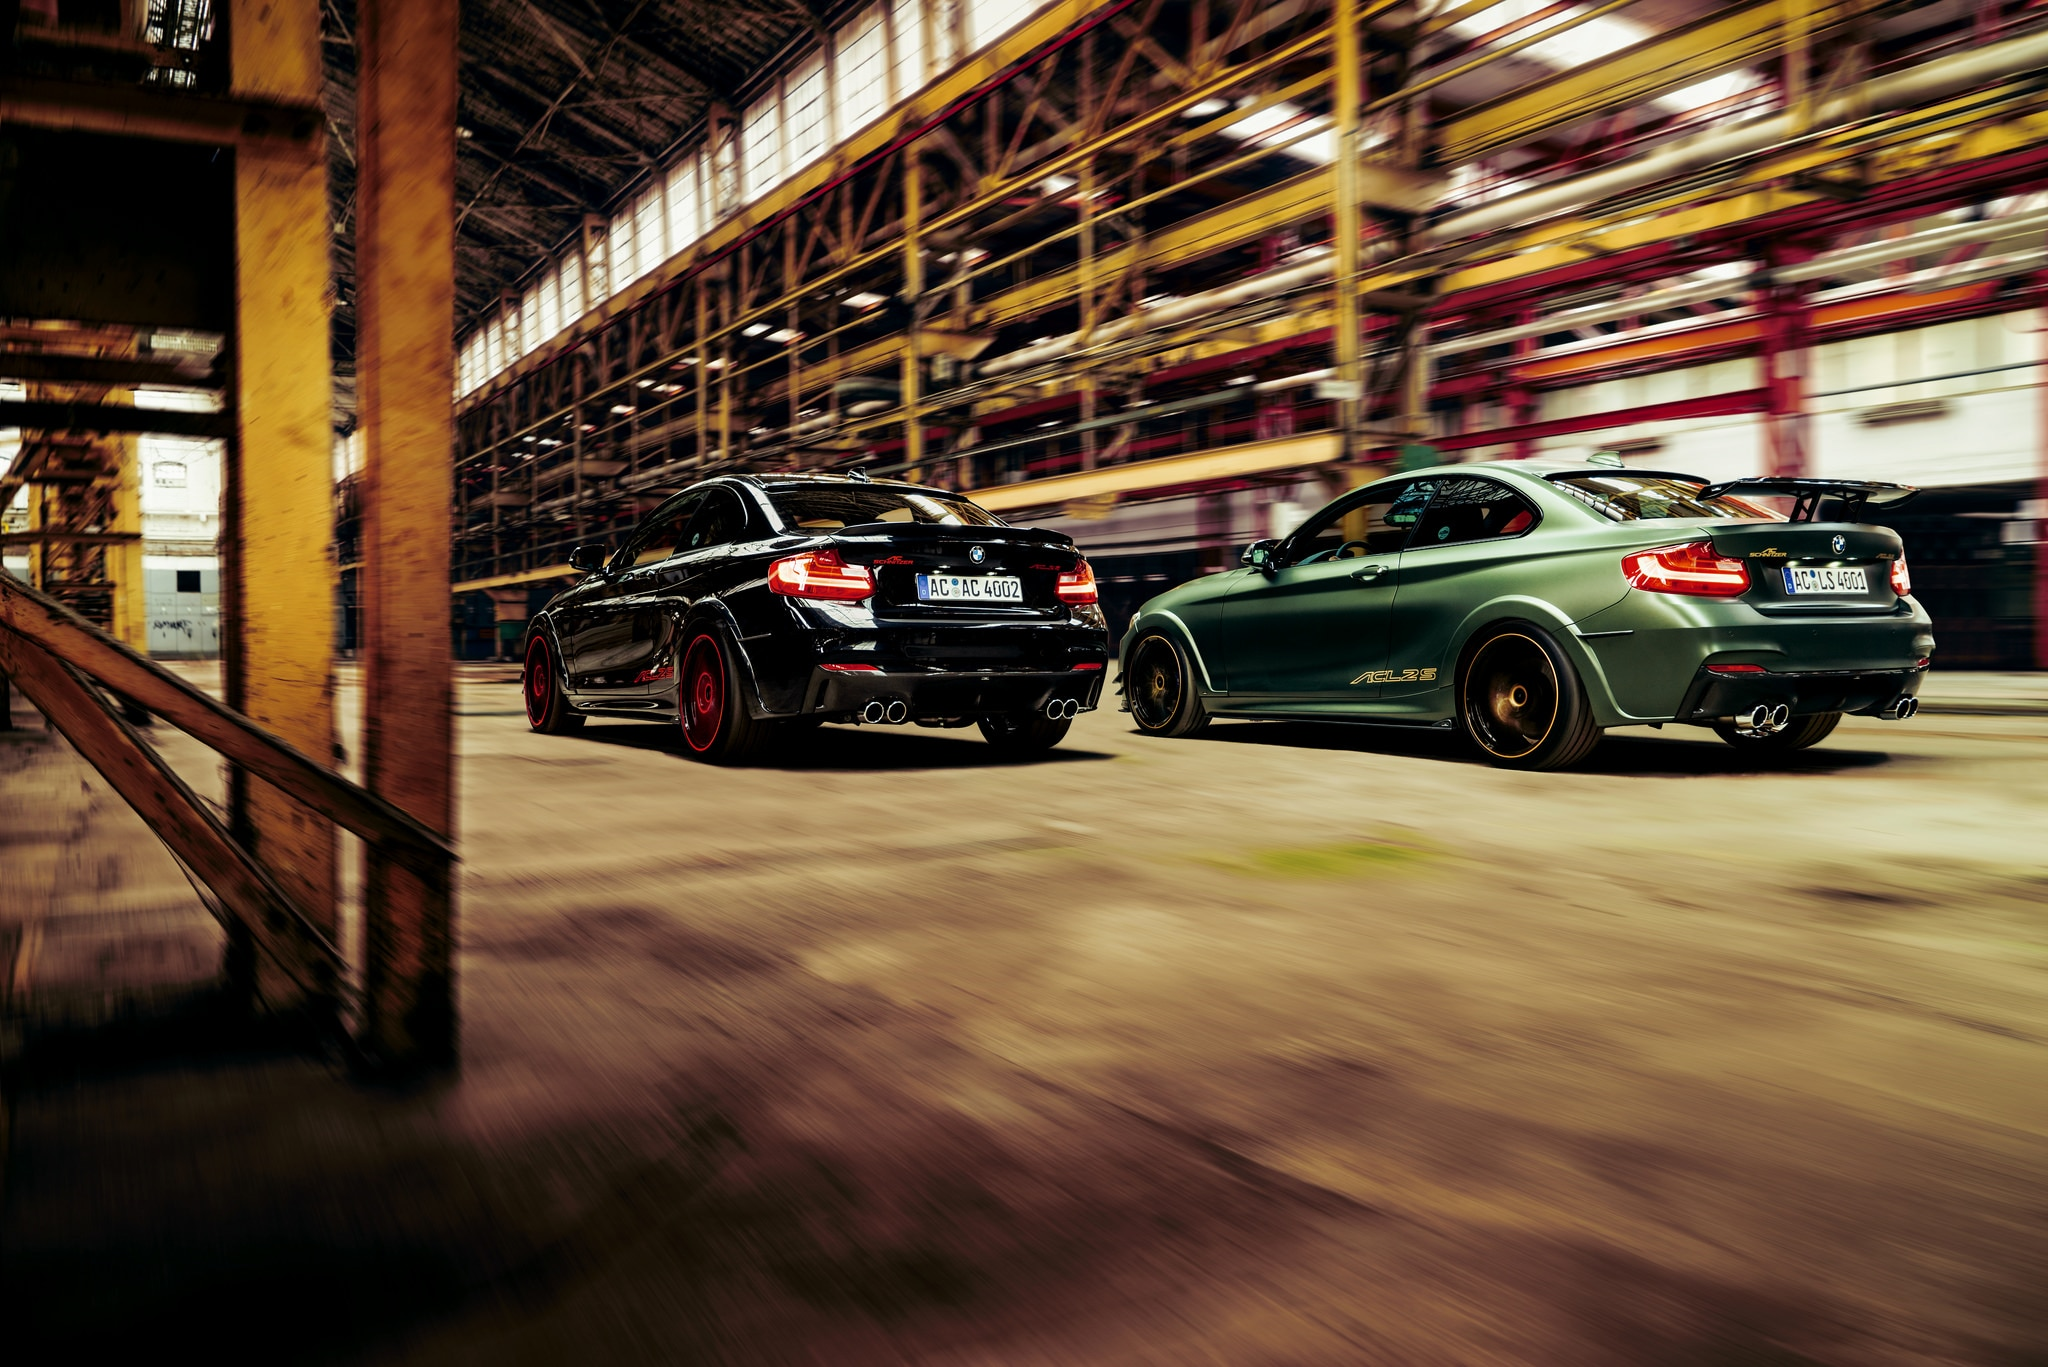 Schnitzer Home Design ac schnitzer releases 30th anniversary acl2s package for bmw m240i